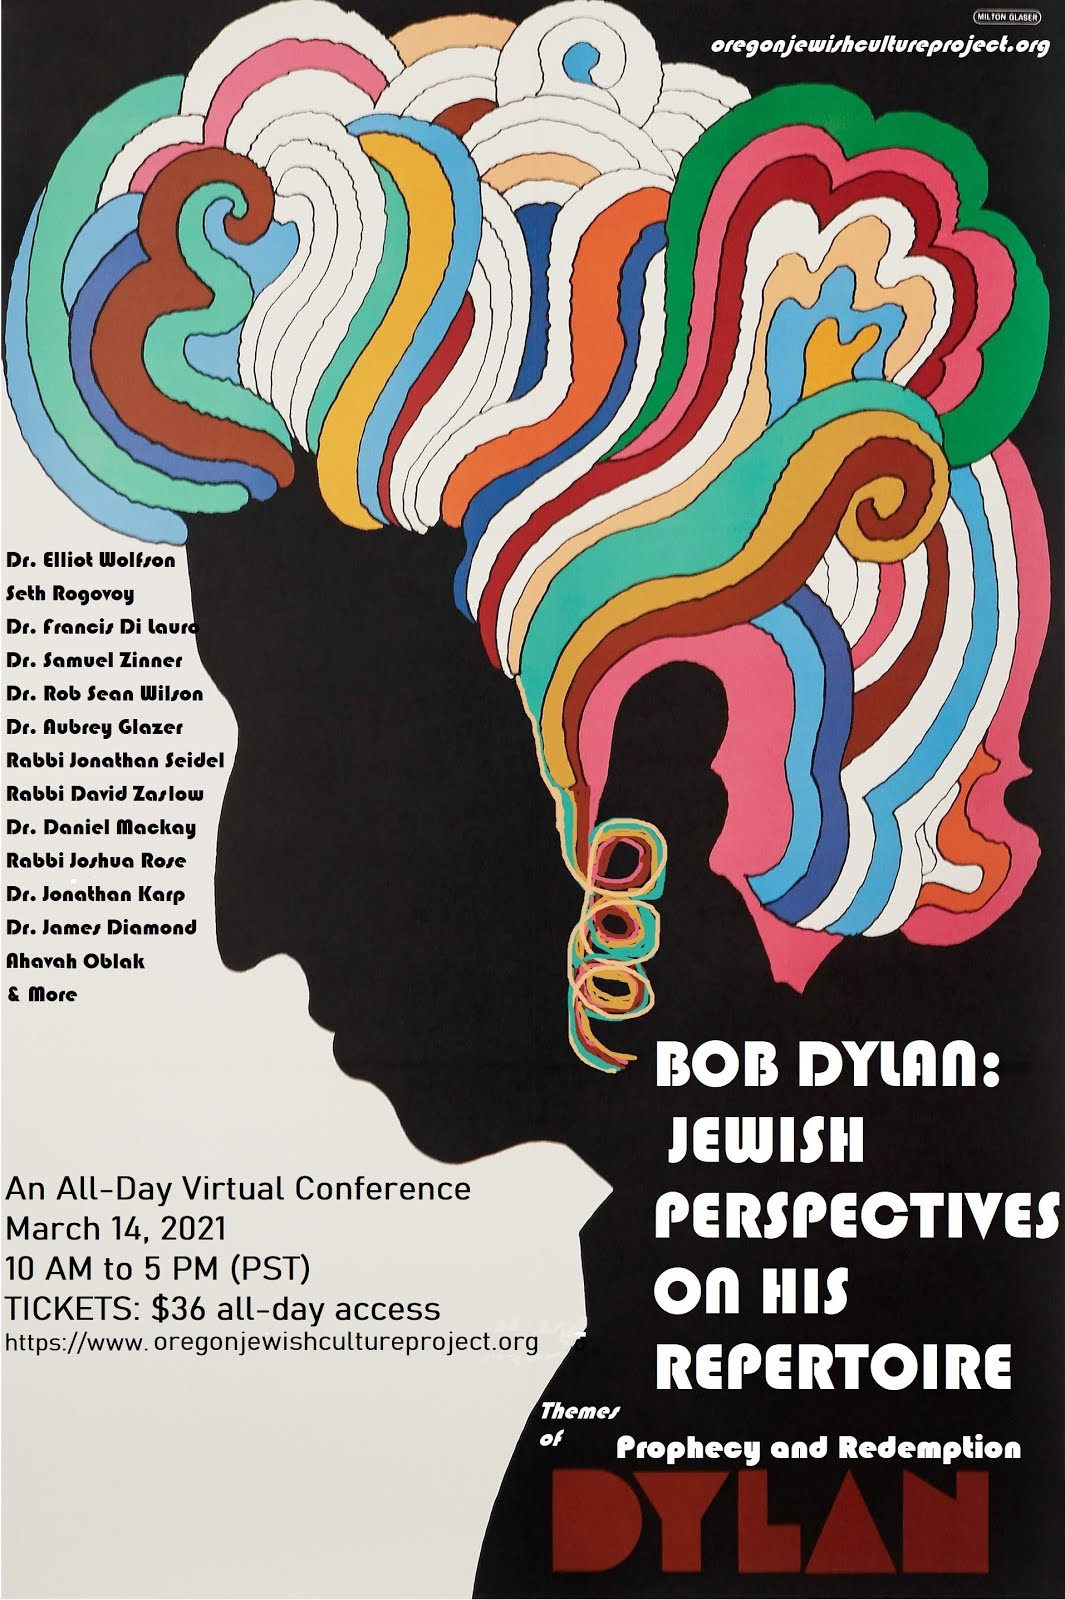 Bob Dylan: Jewish Perspectives On His Repertoire